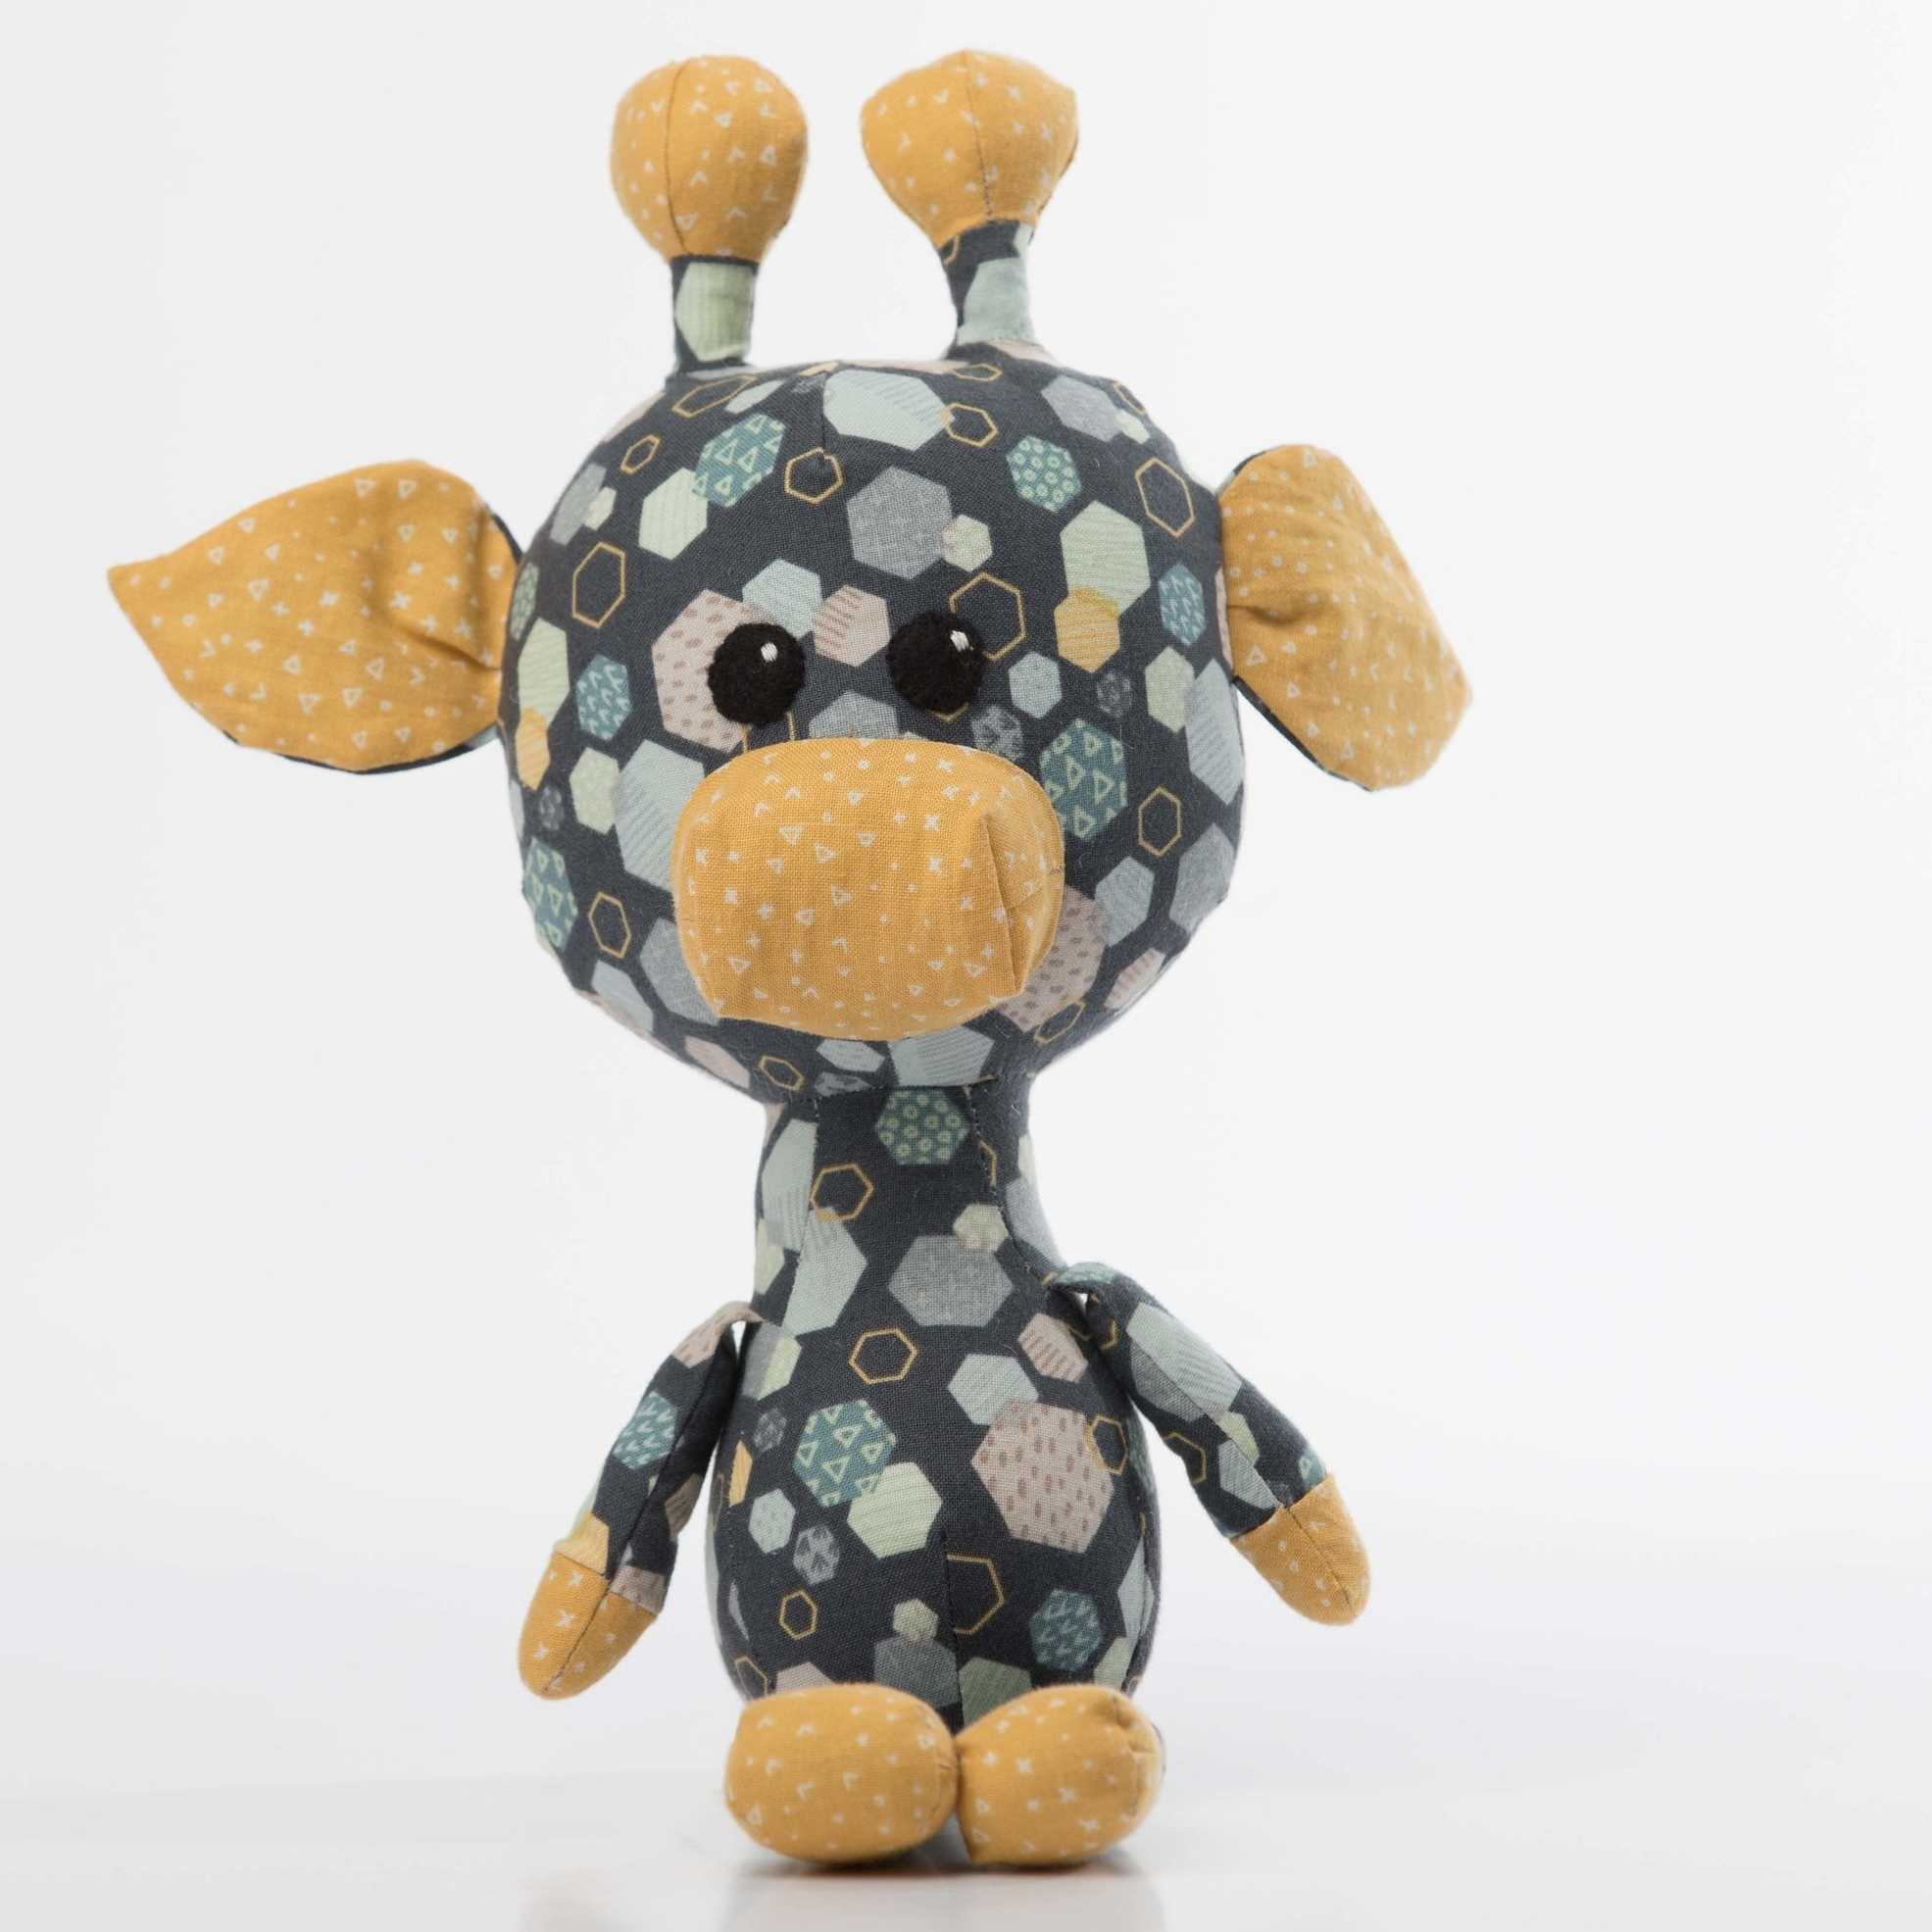 Rasen the Giraffe Tutorial   Click here to view the video tutorials on how to sew Rasen.